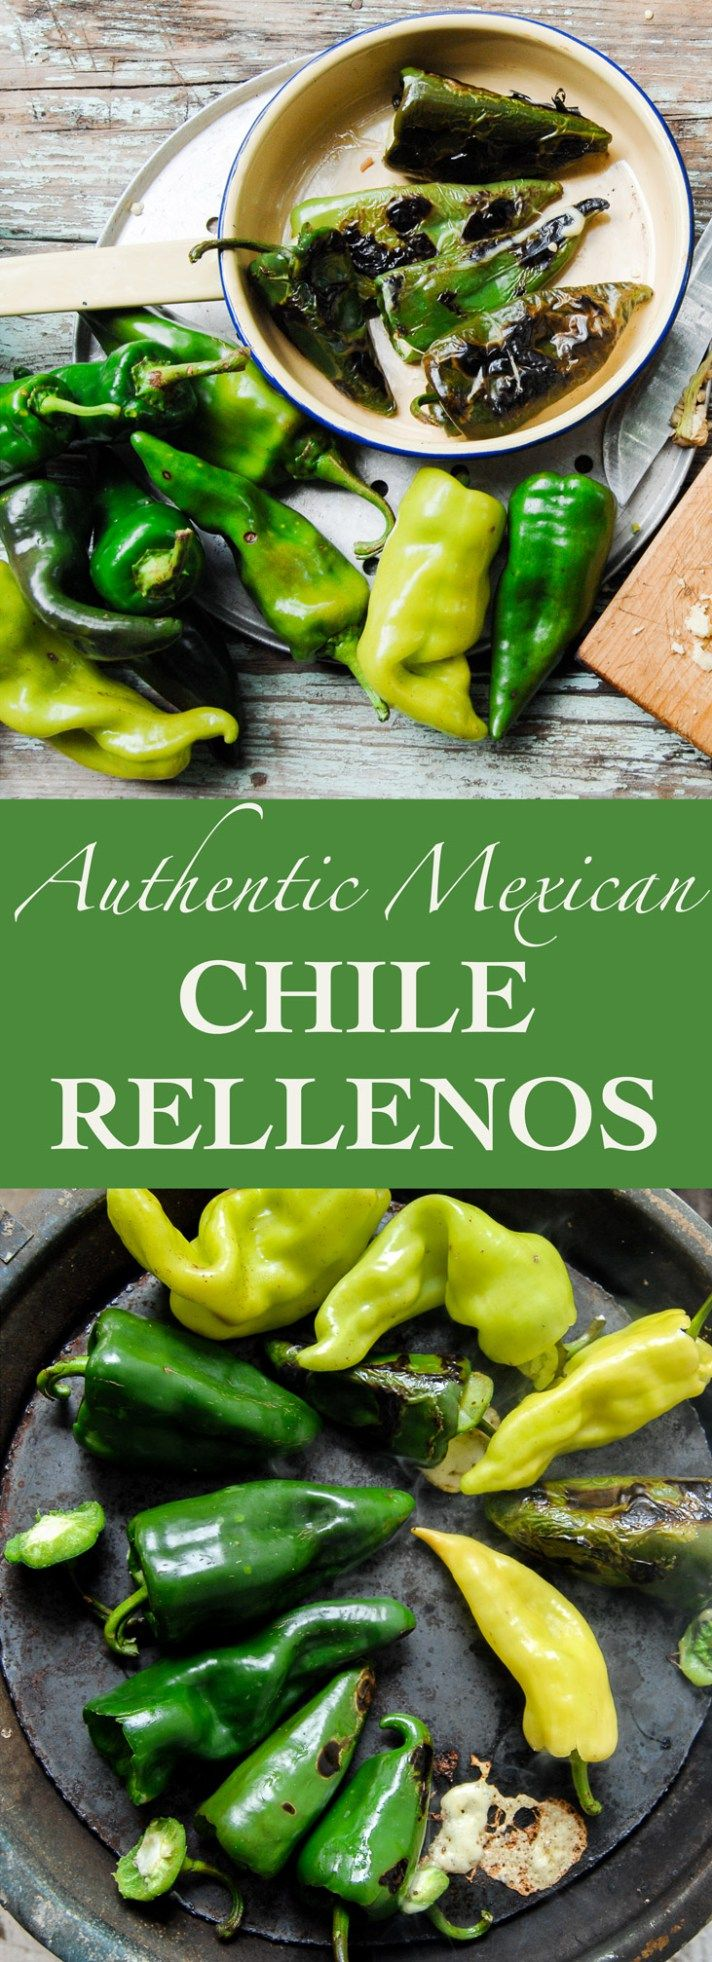 Authentic Mexican Chile Relleno recipe. Fast, easy and only two ingredients!